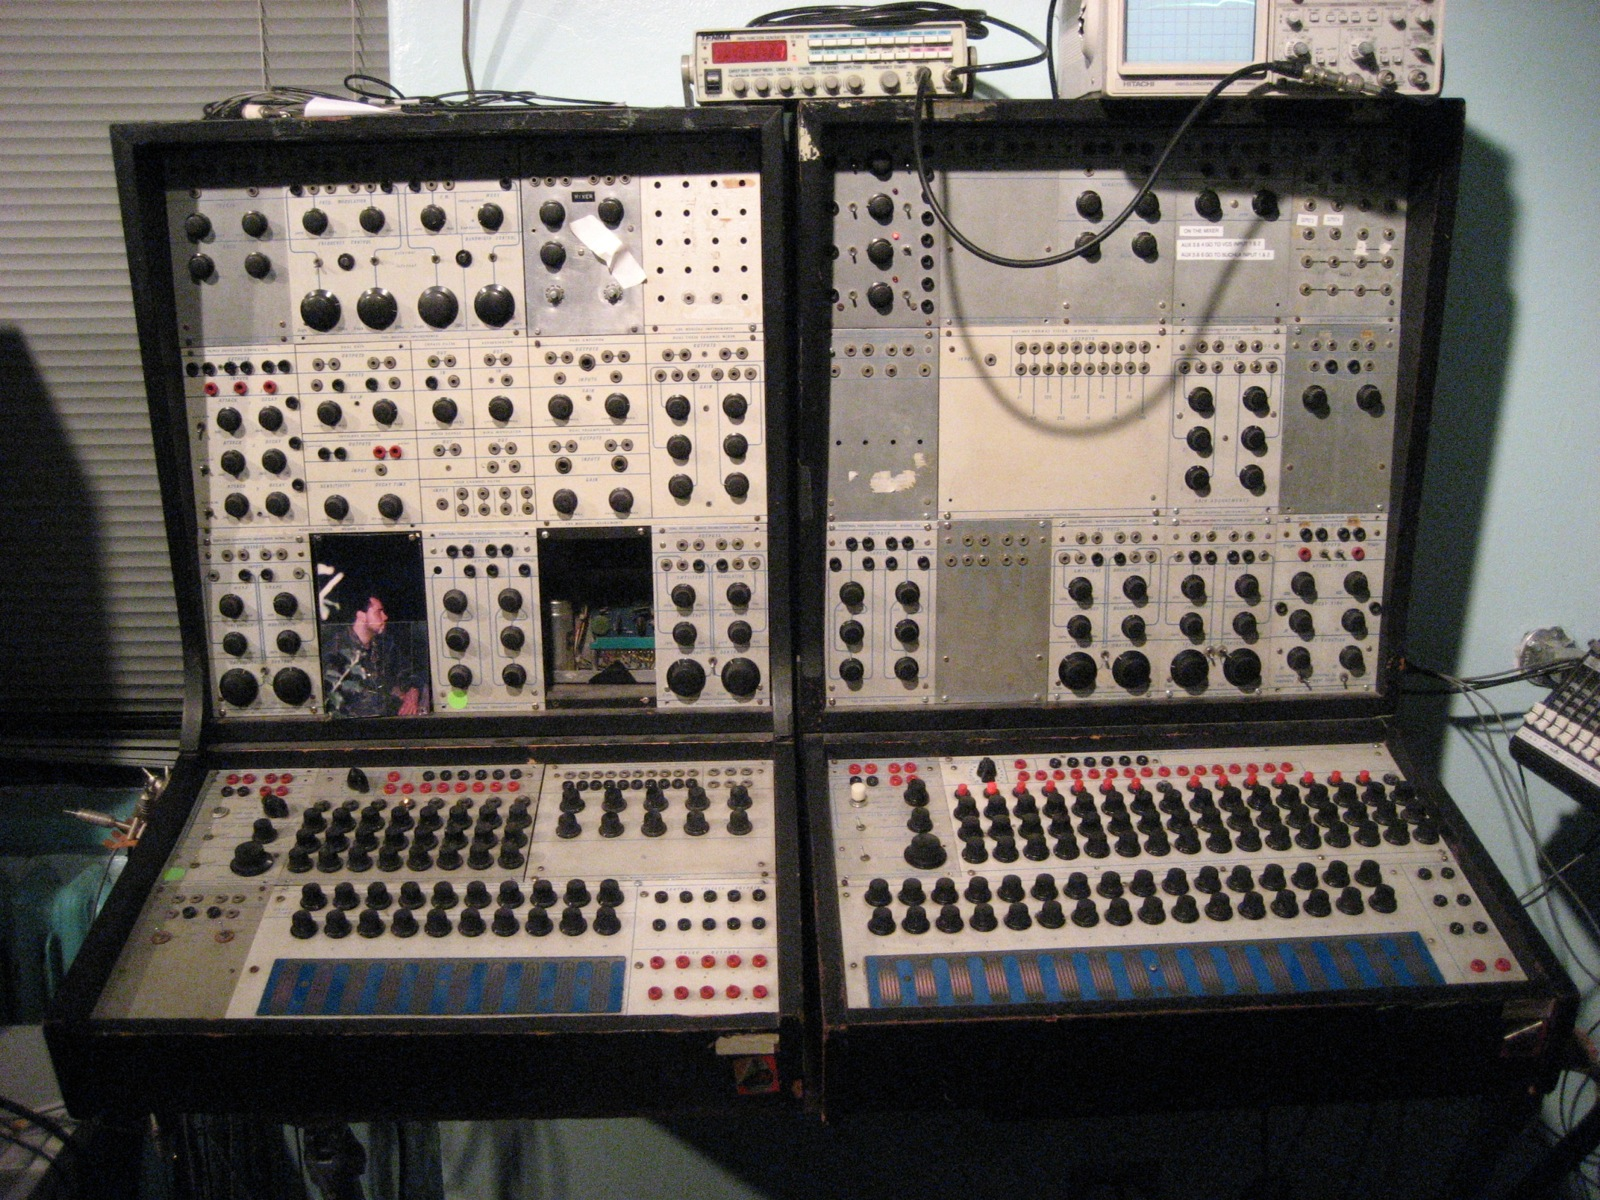 Buchla 100 series (By Bennett - originally posted to Flickr as NYU's Buchla 100 series, CC BY-SA 2.0, https://commons.wikimedia.org/w/index.php?curid=9039000)